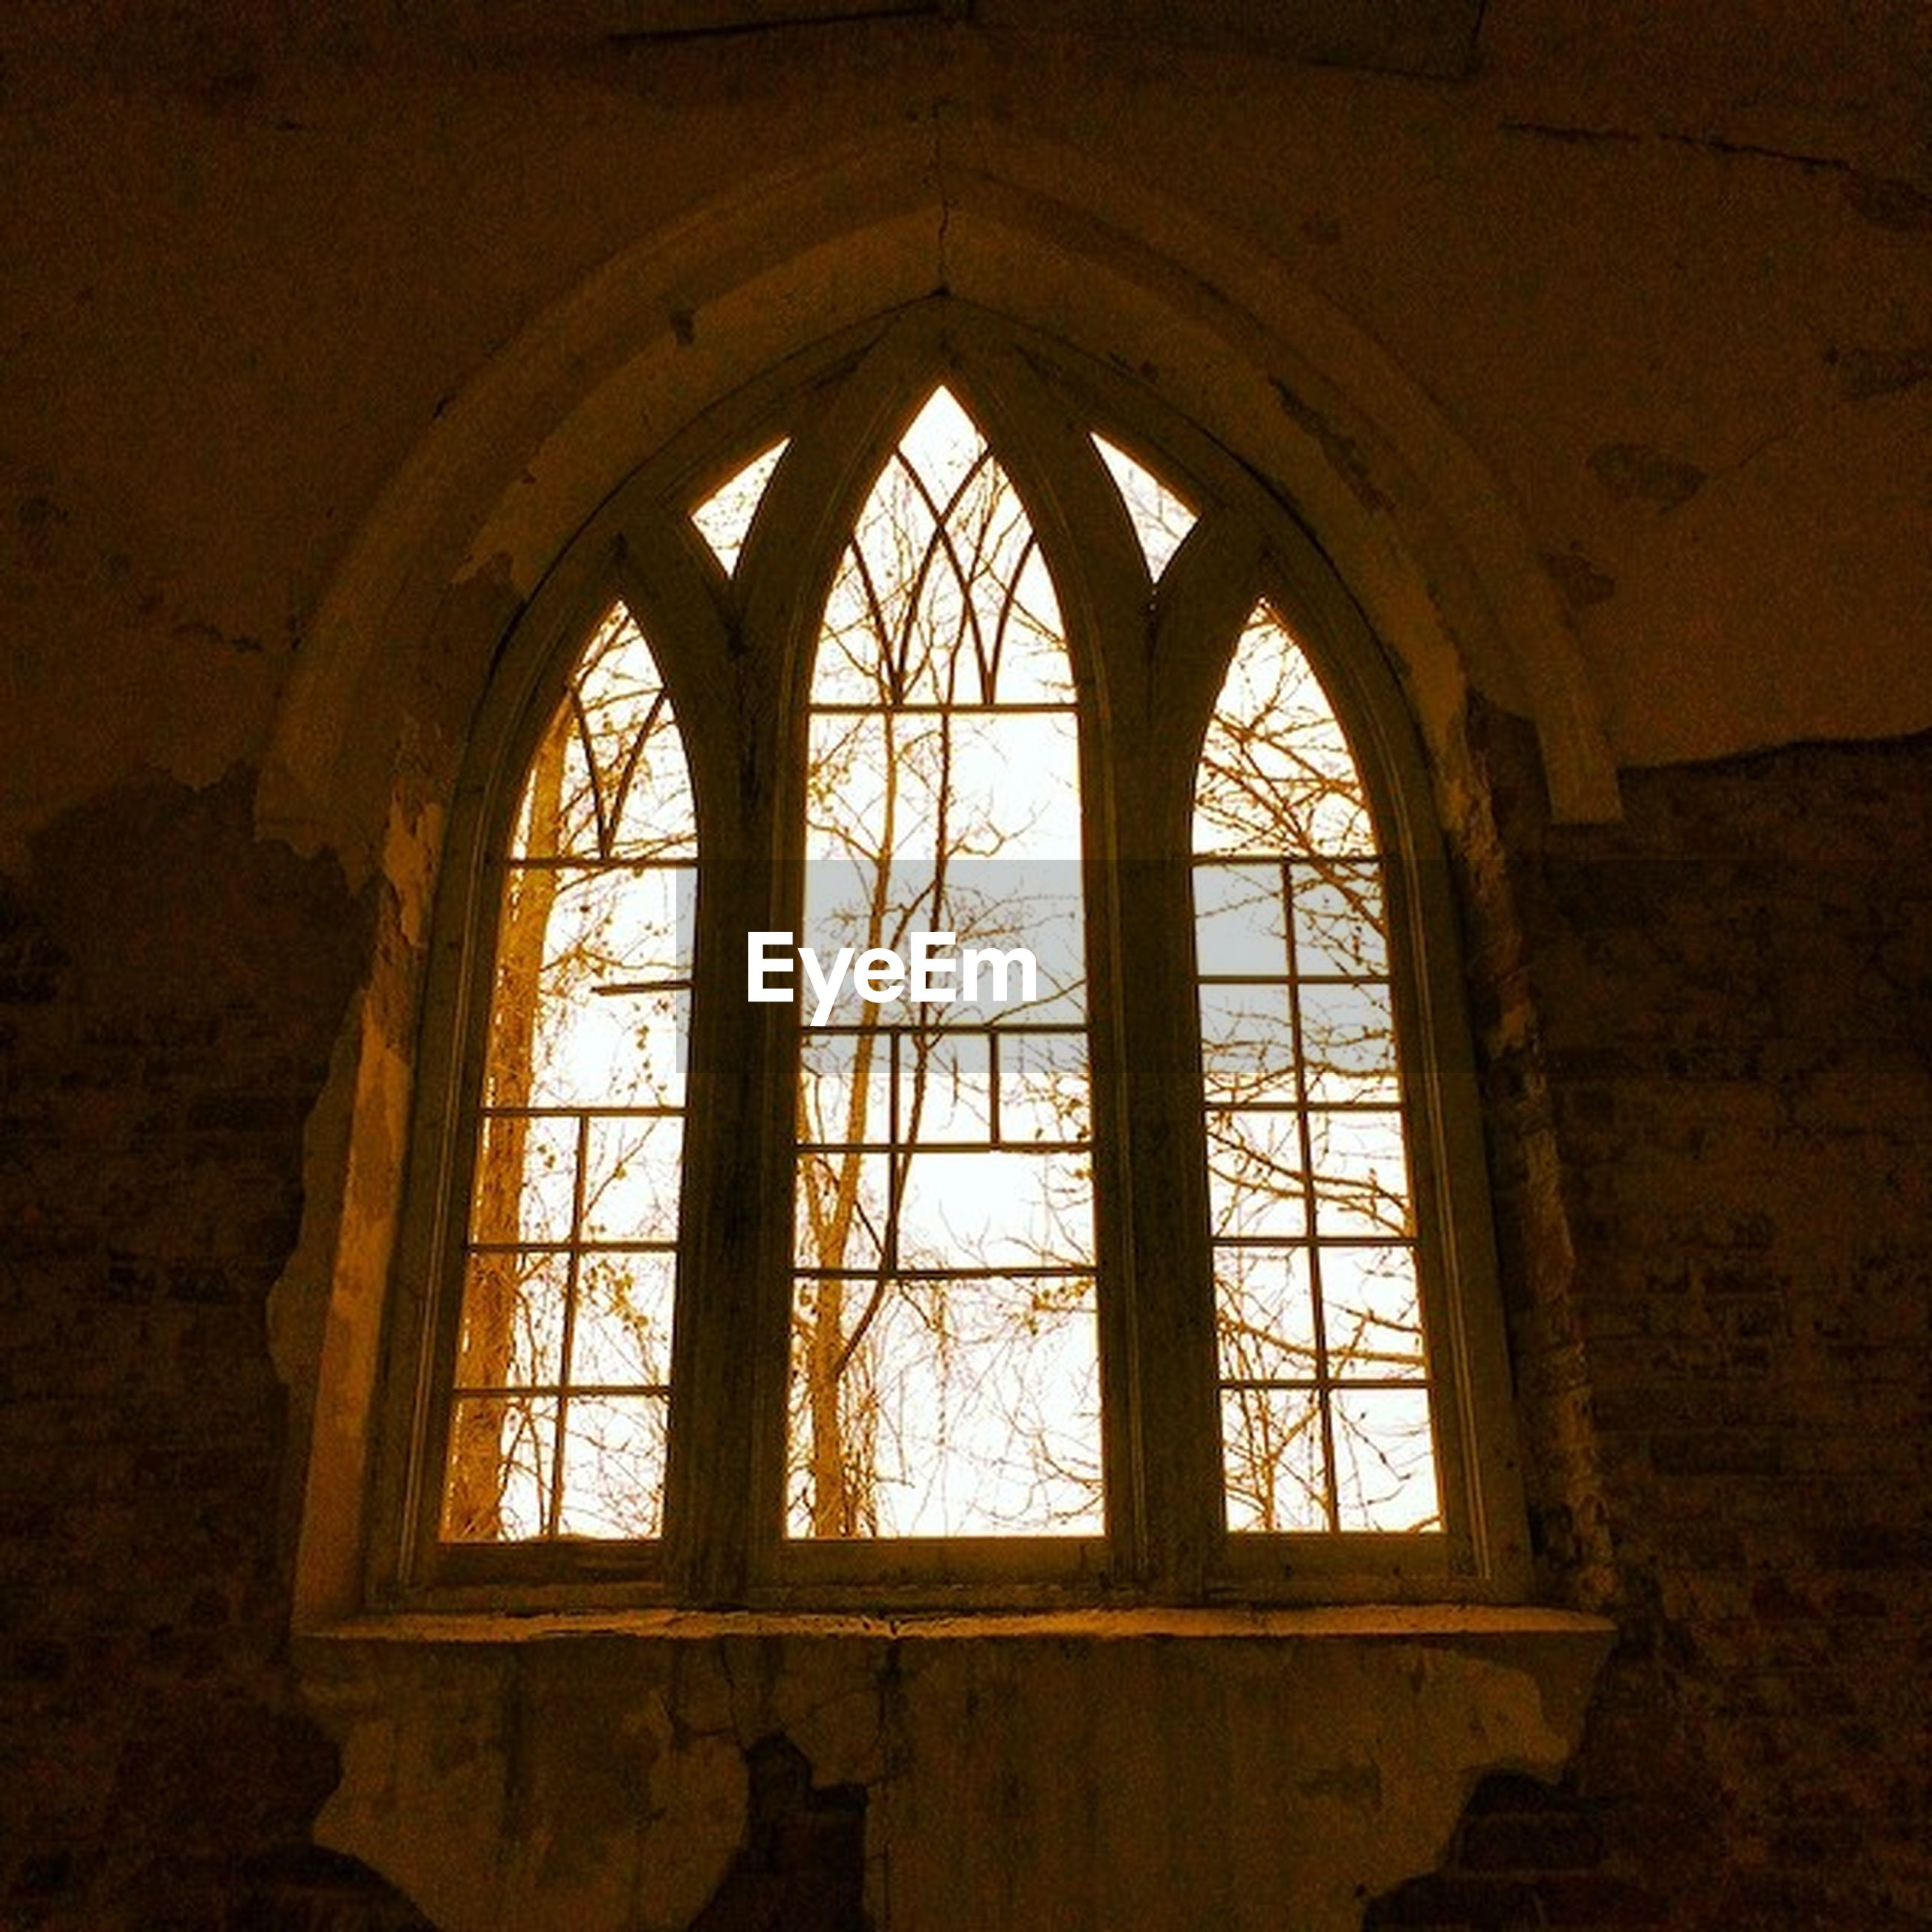 indoors, architecture, window, arch, built structure, interior, no people, ceiling, archway, building, low angle view, wall - building feature, history, stained glass, day, church, pattern, dark, home interior, sunlight